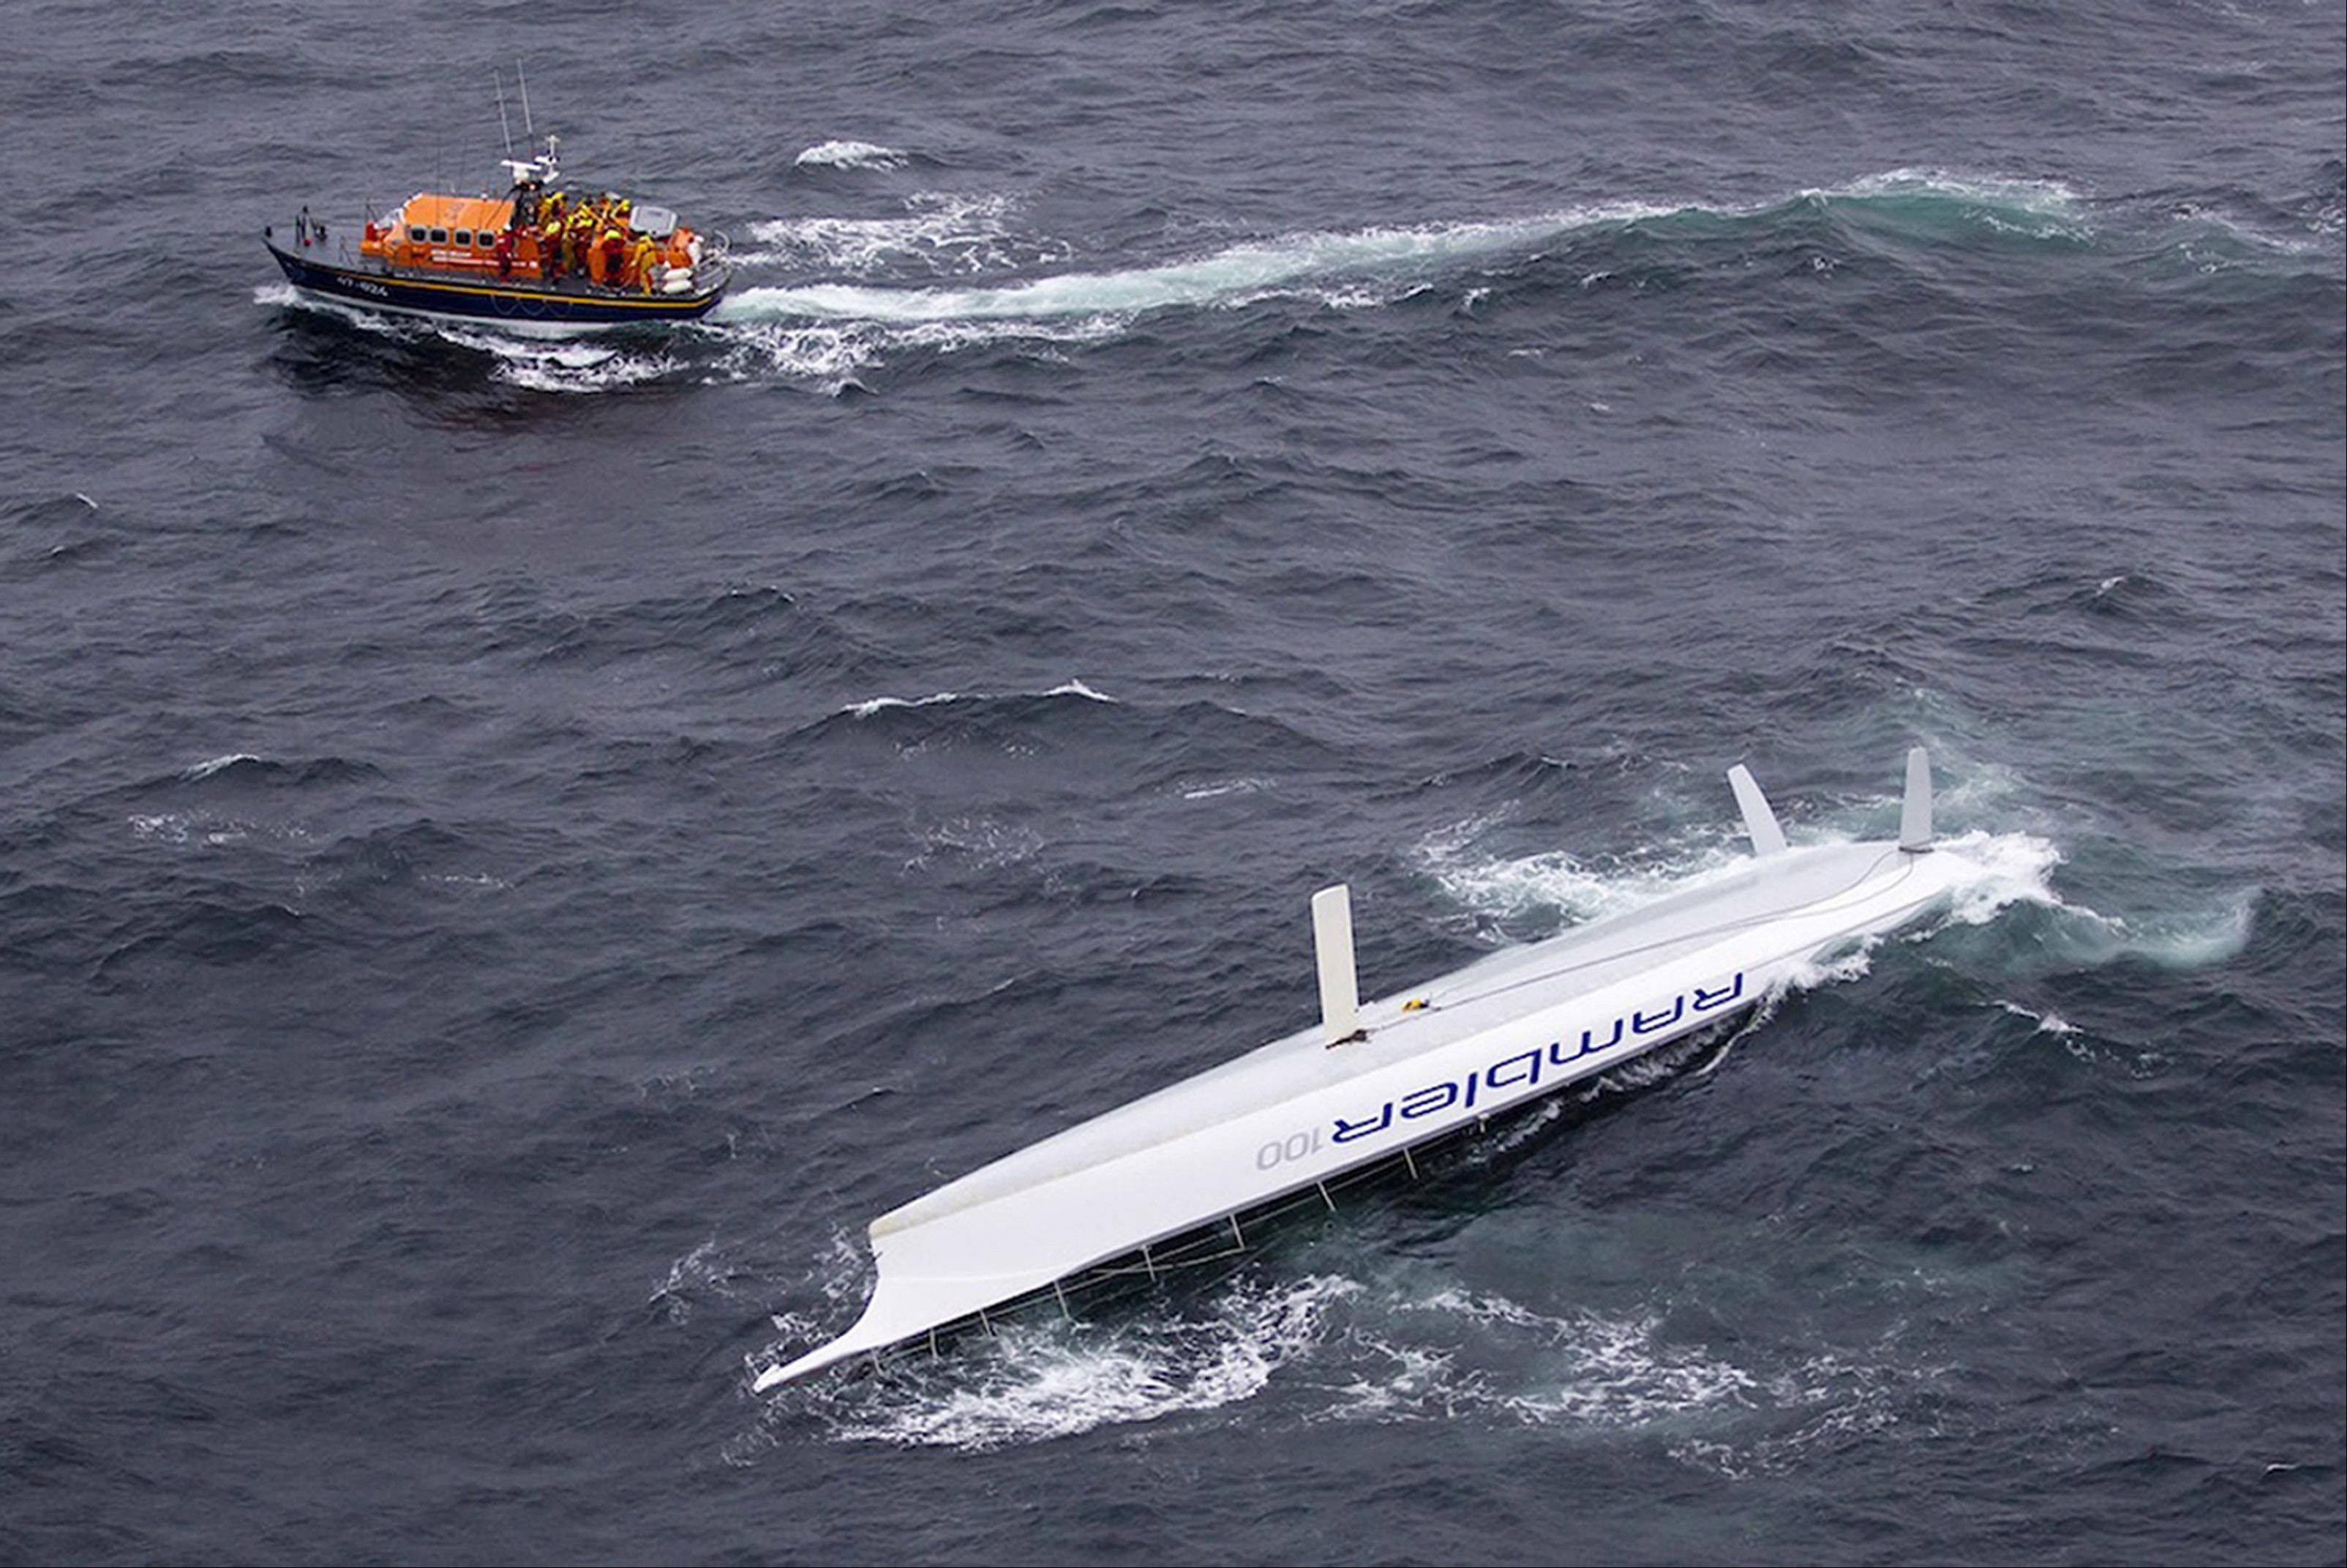 Rescuers saved 21 people after their U.S.-registered racing yacht capsized off the Irish coast.